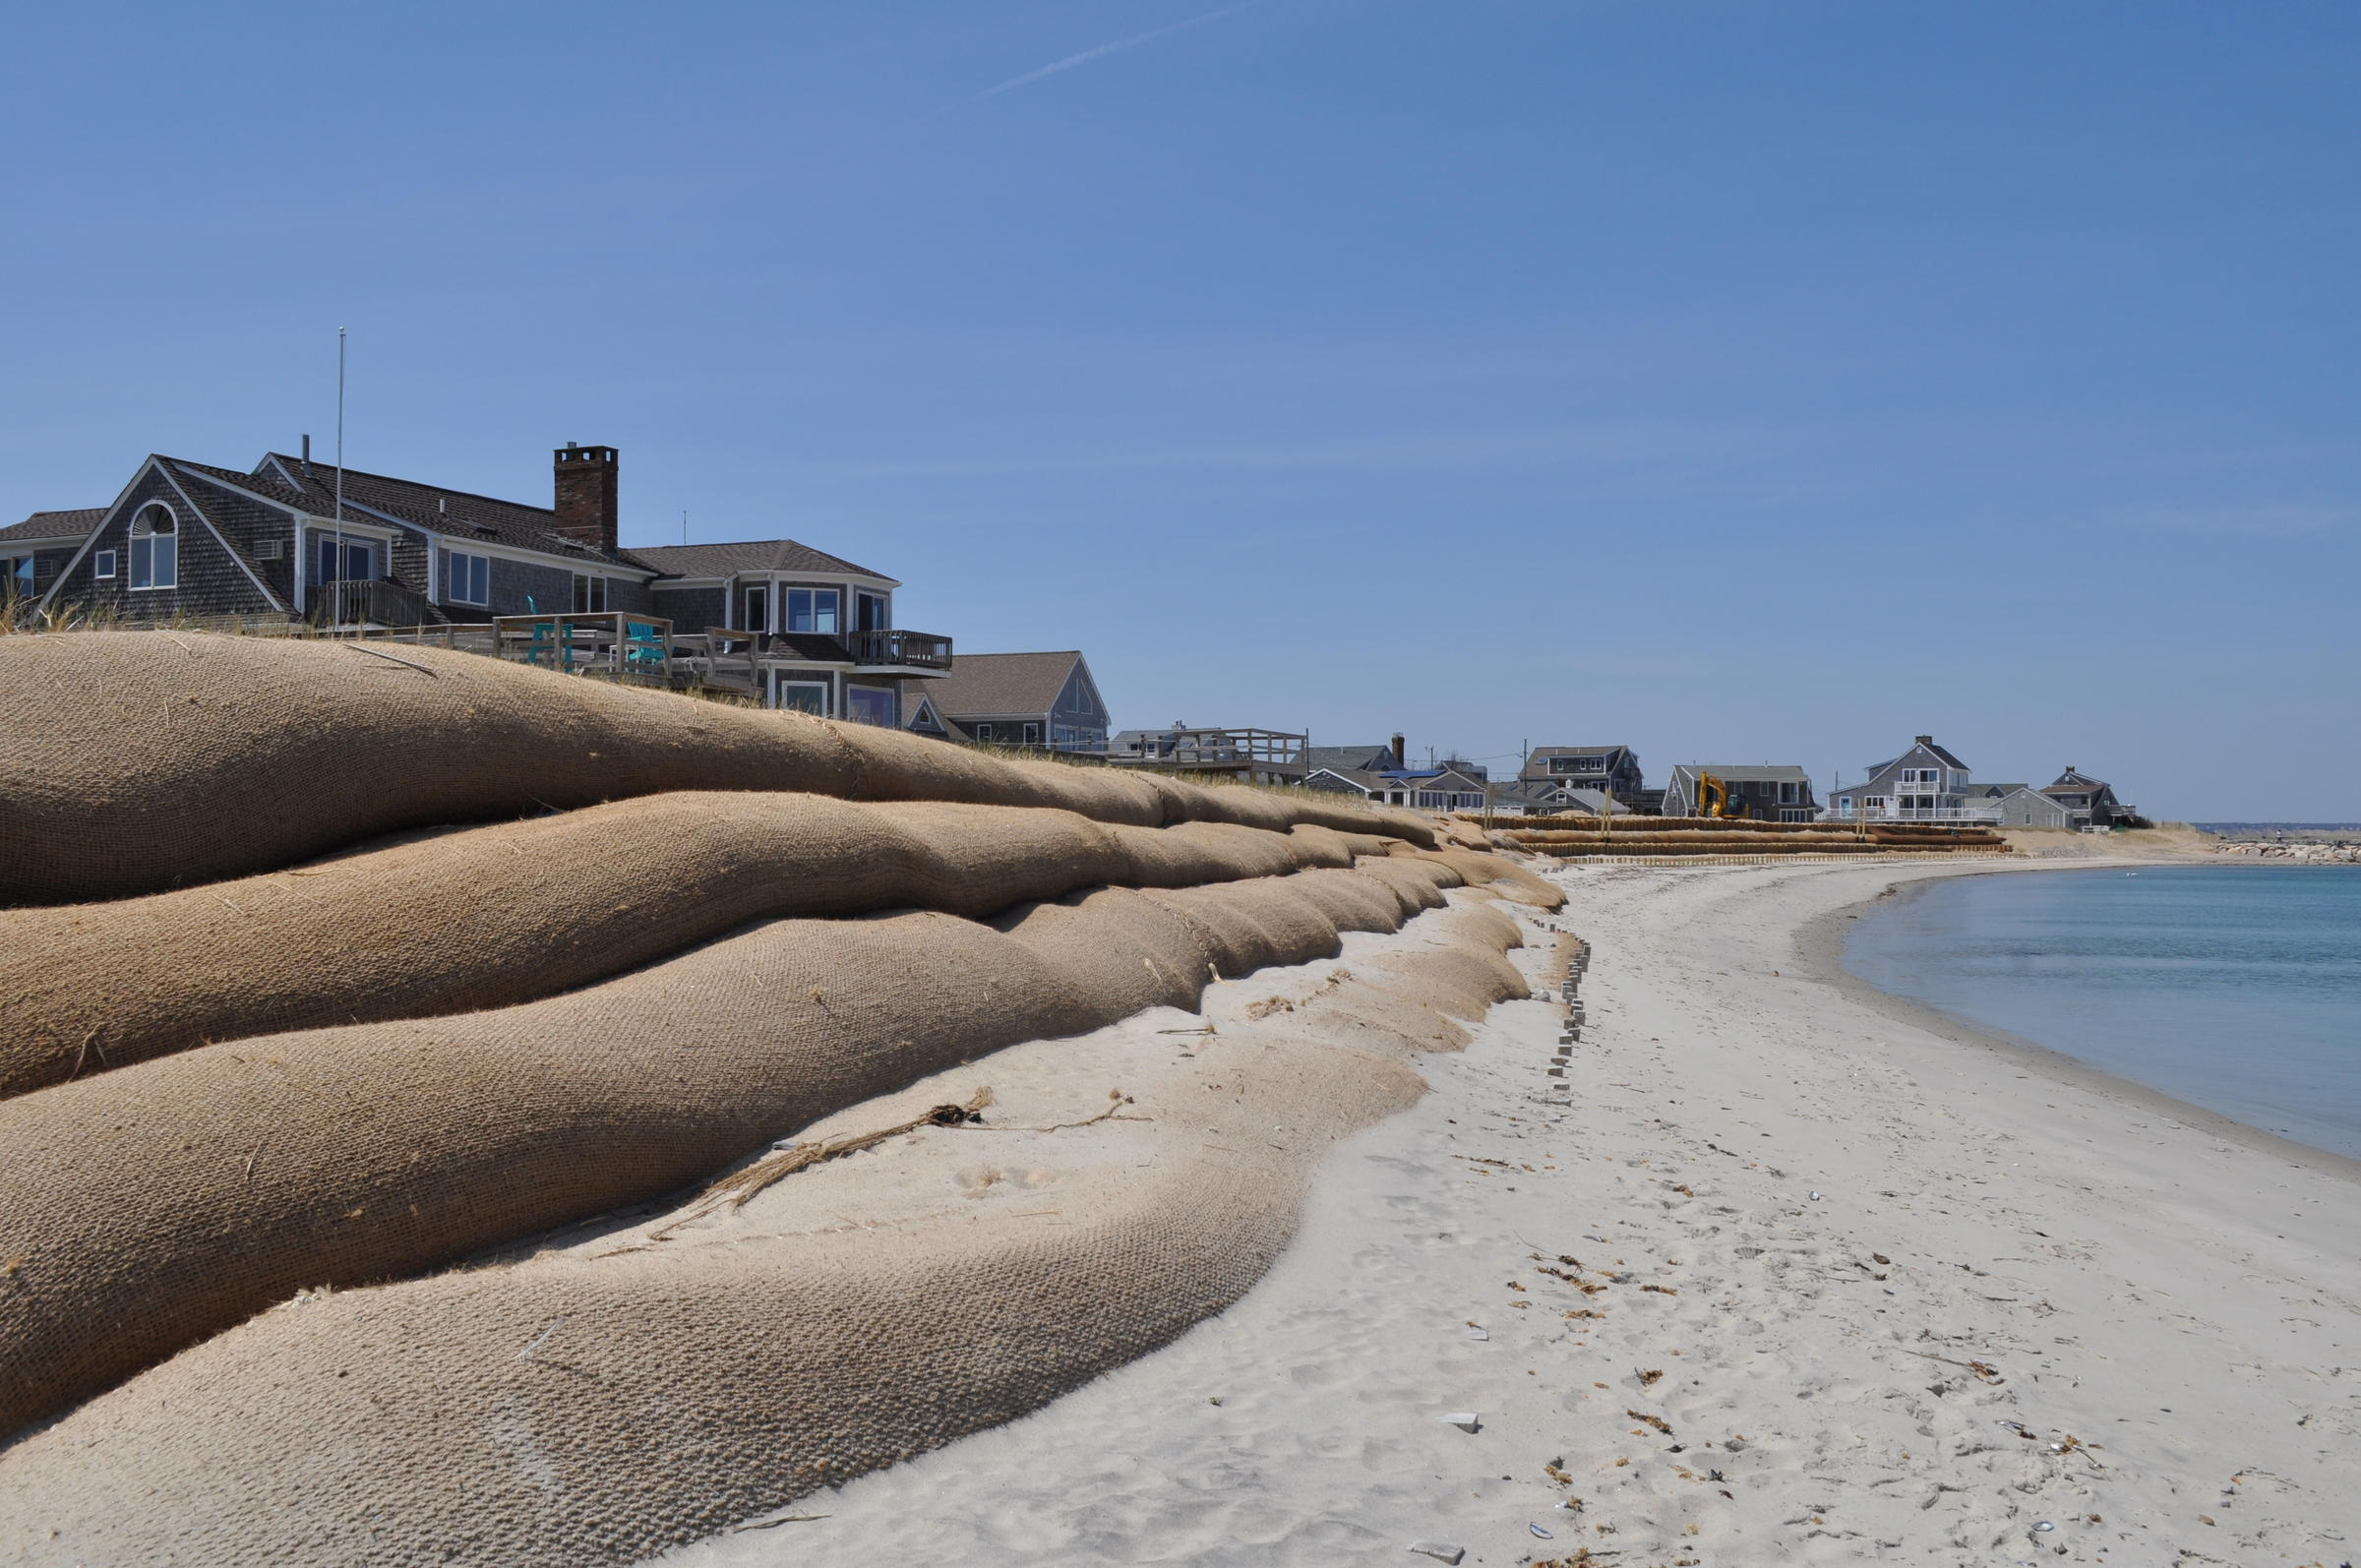 Cape Cod S Gest Ever Beach Nourishment Project Could Be Coming To Sandwich